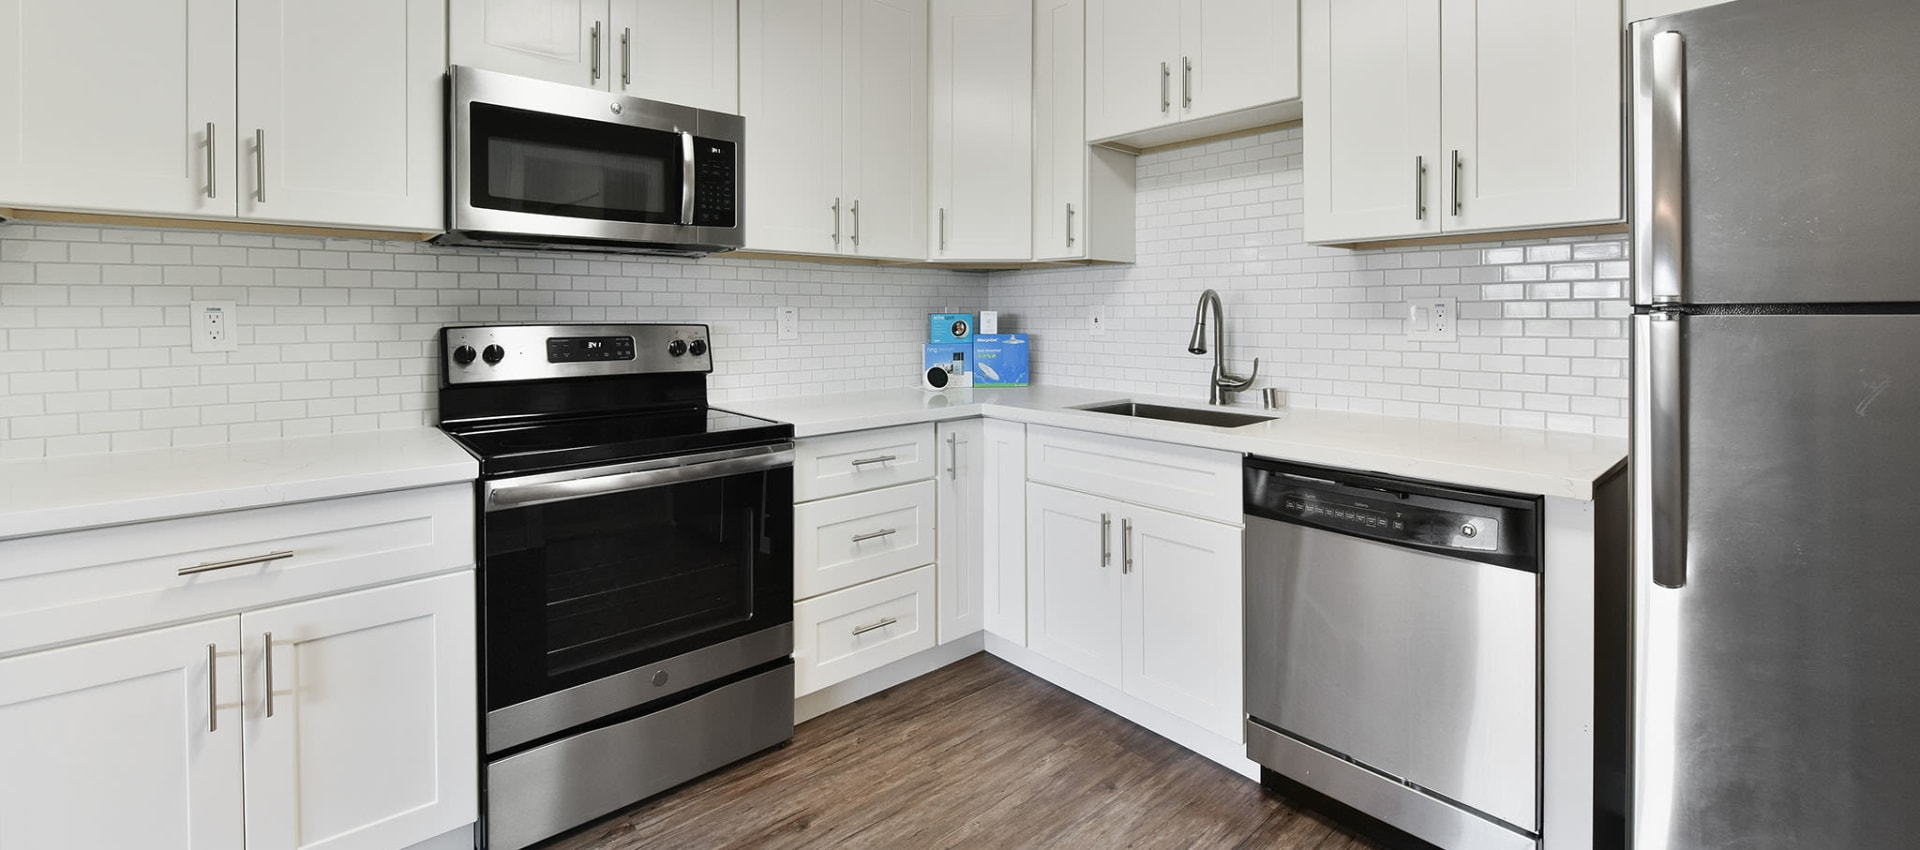 Clean white kitchen at apartments in Alameda, CA